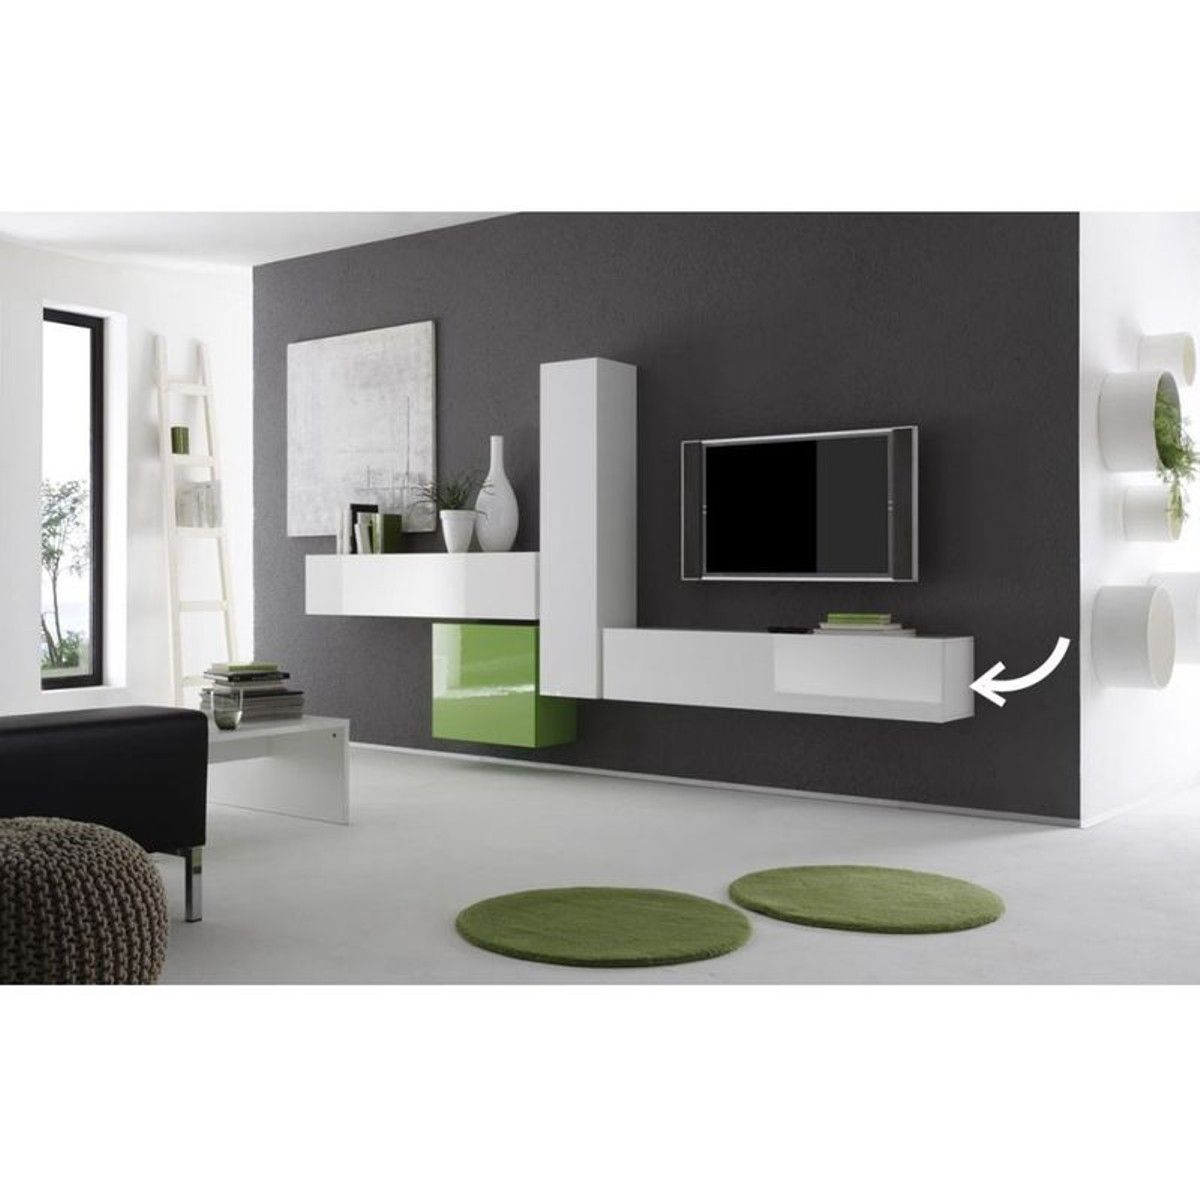 Meuble Tv Design Colored V2 Element Horizontal Meuble Tv Colonne  # Meuble Tv Design Mural